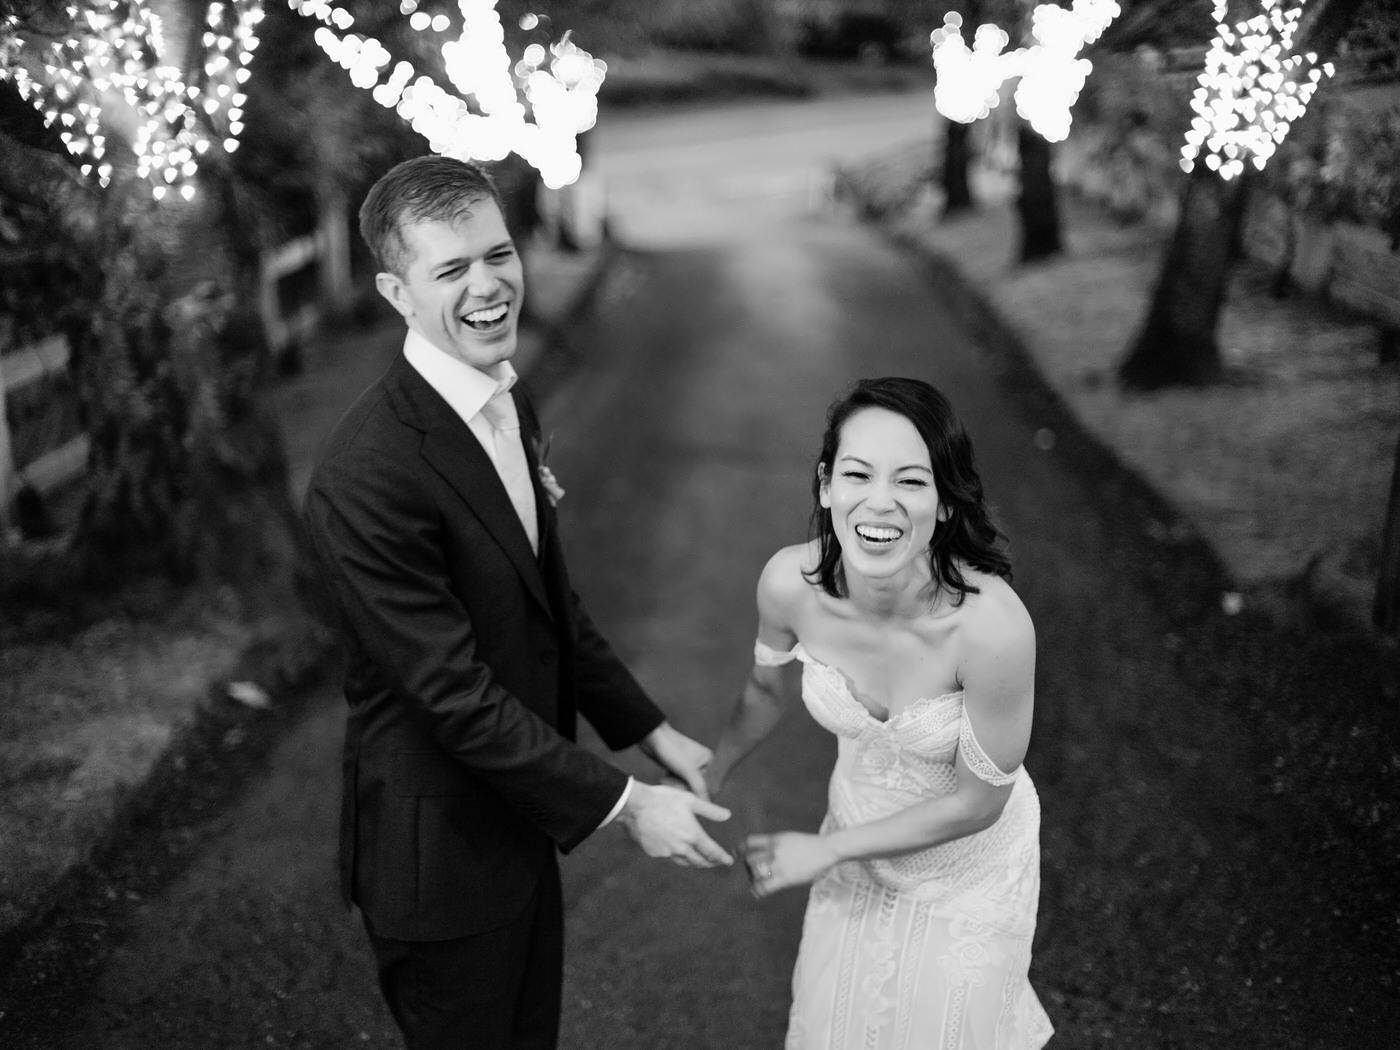 142-pacific-northwest-wedding-photography-by-ryan-flynn.jpg